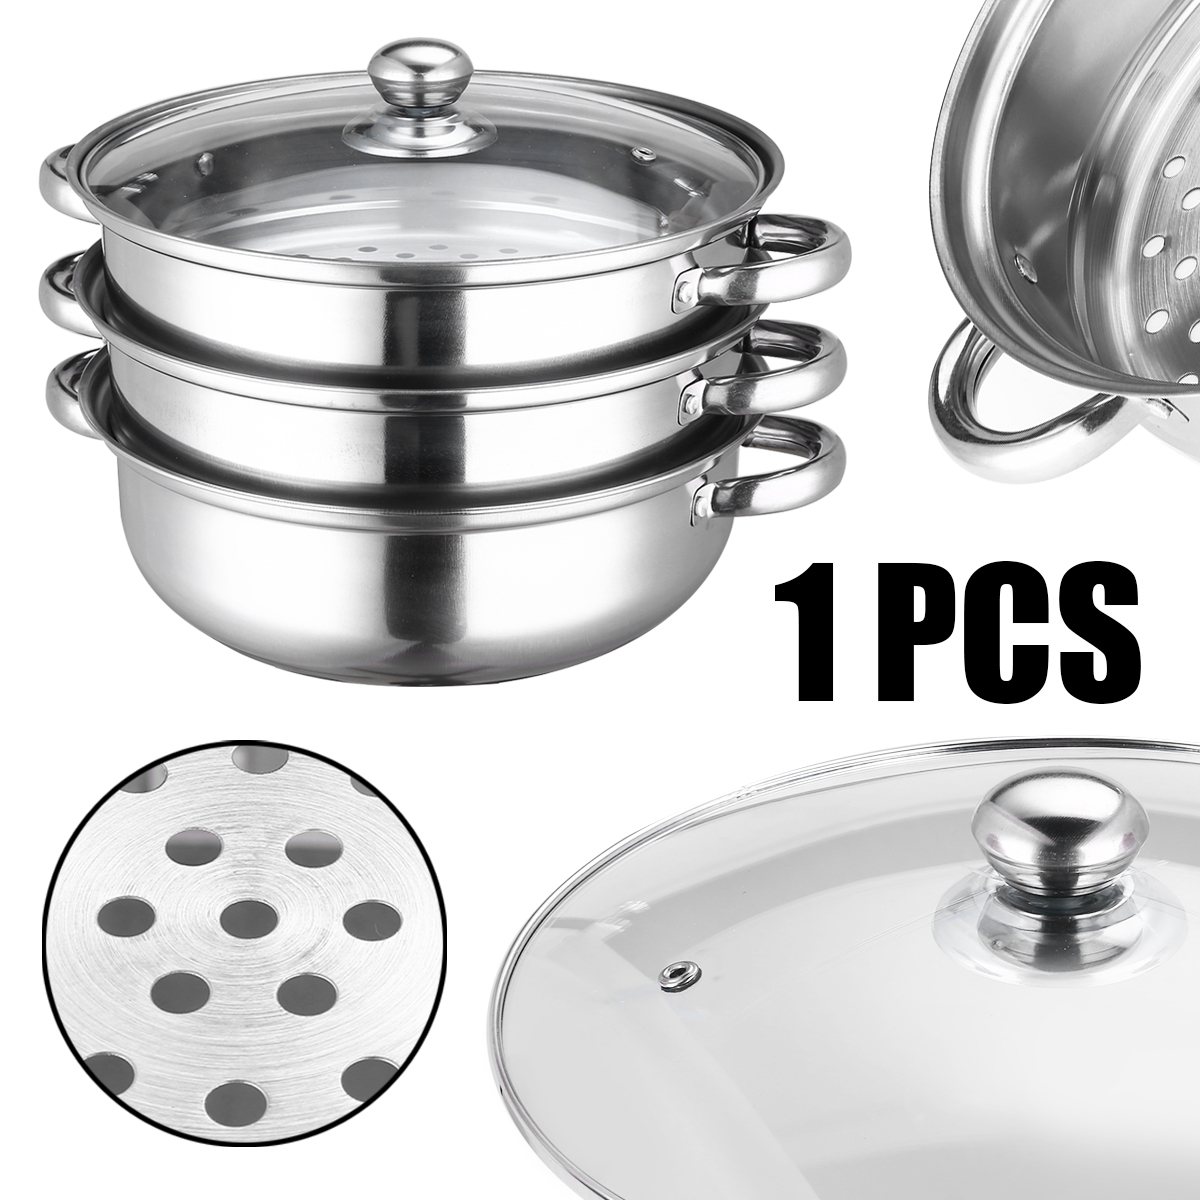 Steamer Saucepan Us 28 2 20 Off Durable 3 Tier Steamer Stainless Steel Induction Steam Steaming Saucepan Pot For Kitchen Cookware Tool In Steamers From Home Garden